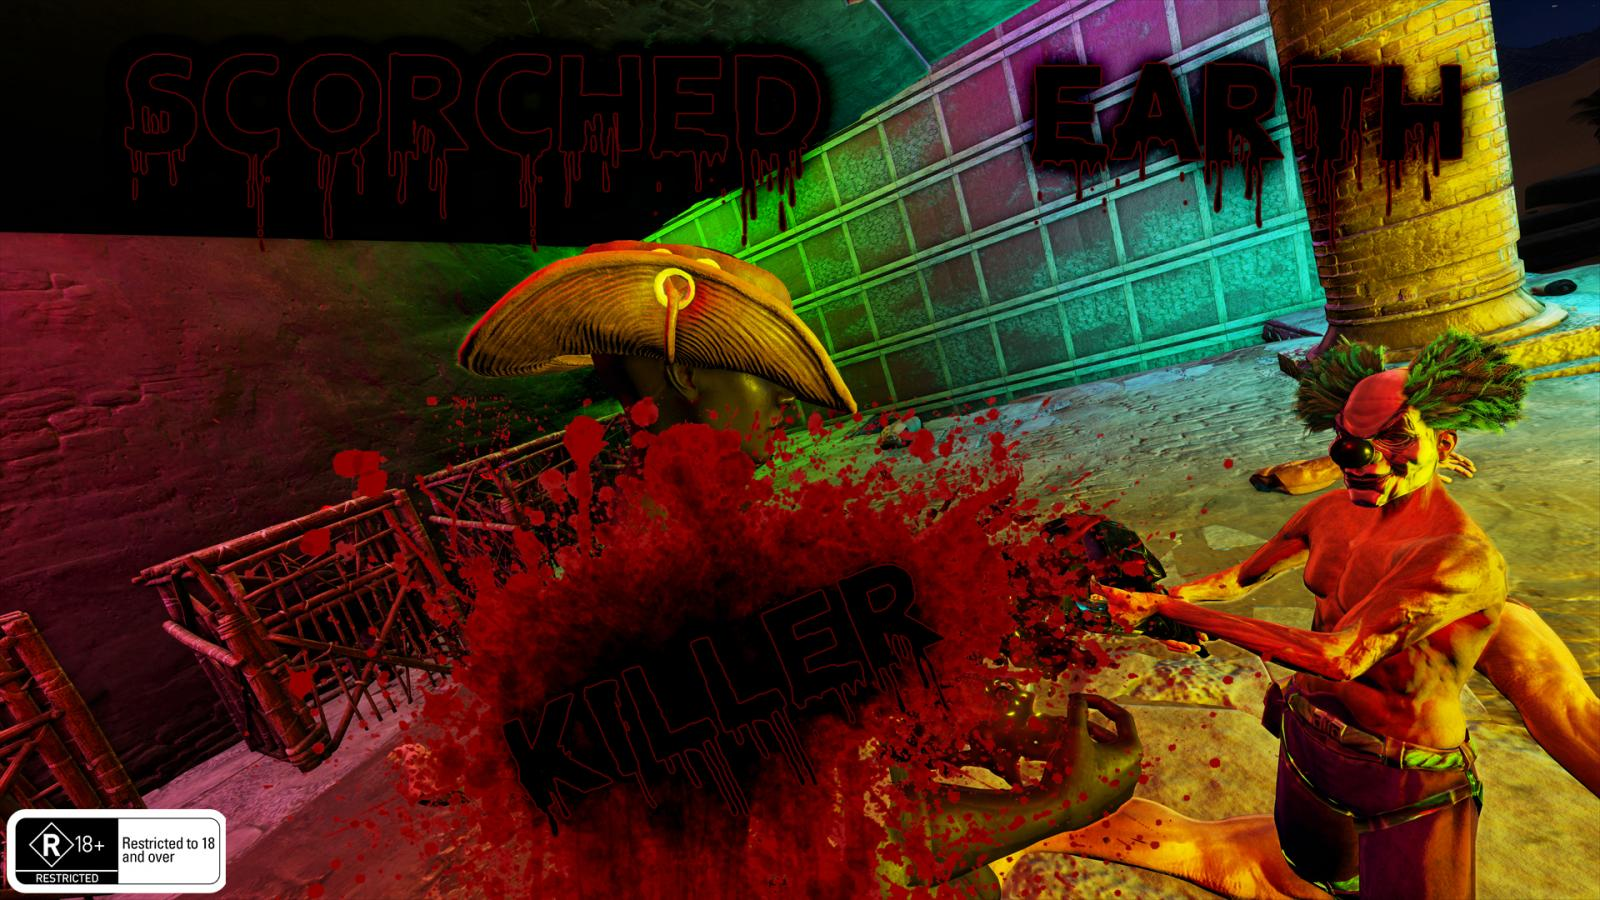 large-582fe5d37994f_soulyoth-scorchedearthkillersta